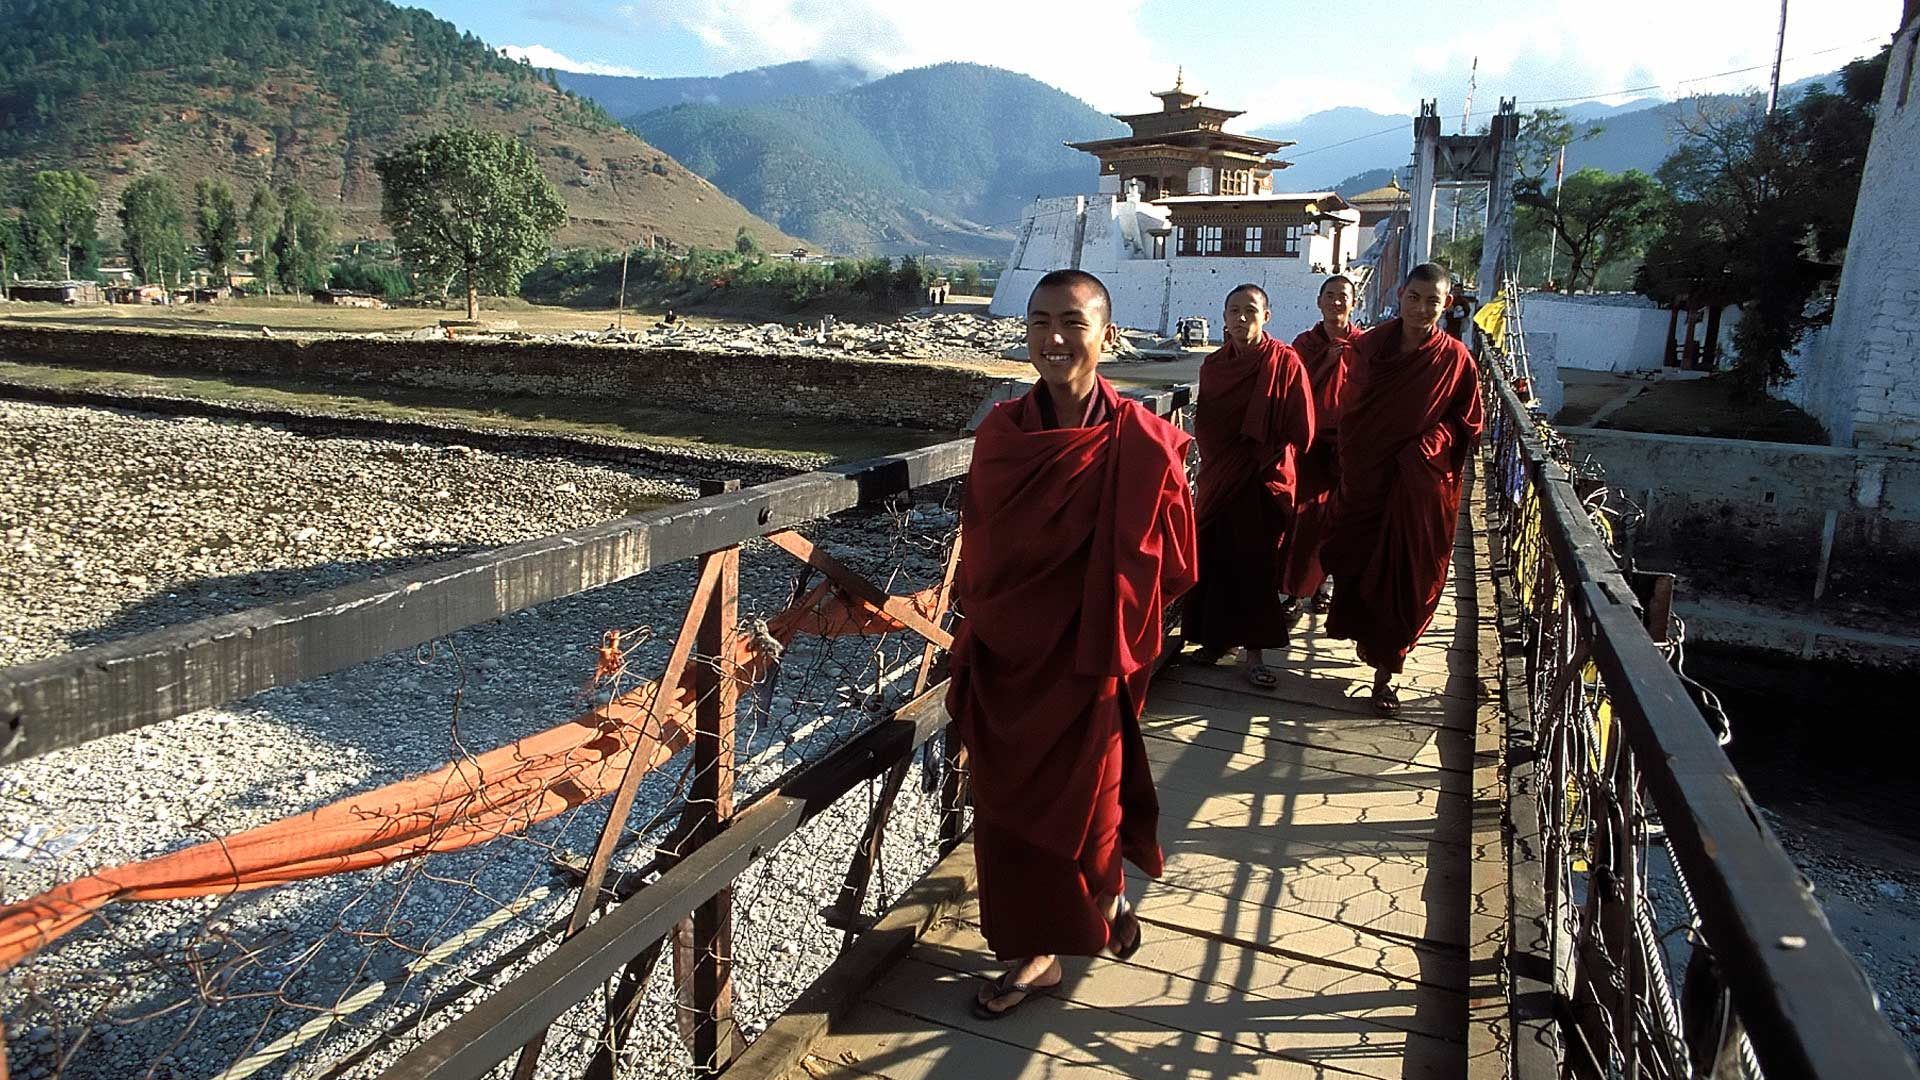 Buddhist monks on a suspension bridge over the Pho Chu River, Punakha Dzong, Phunaka District, Bhutan